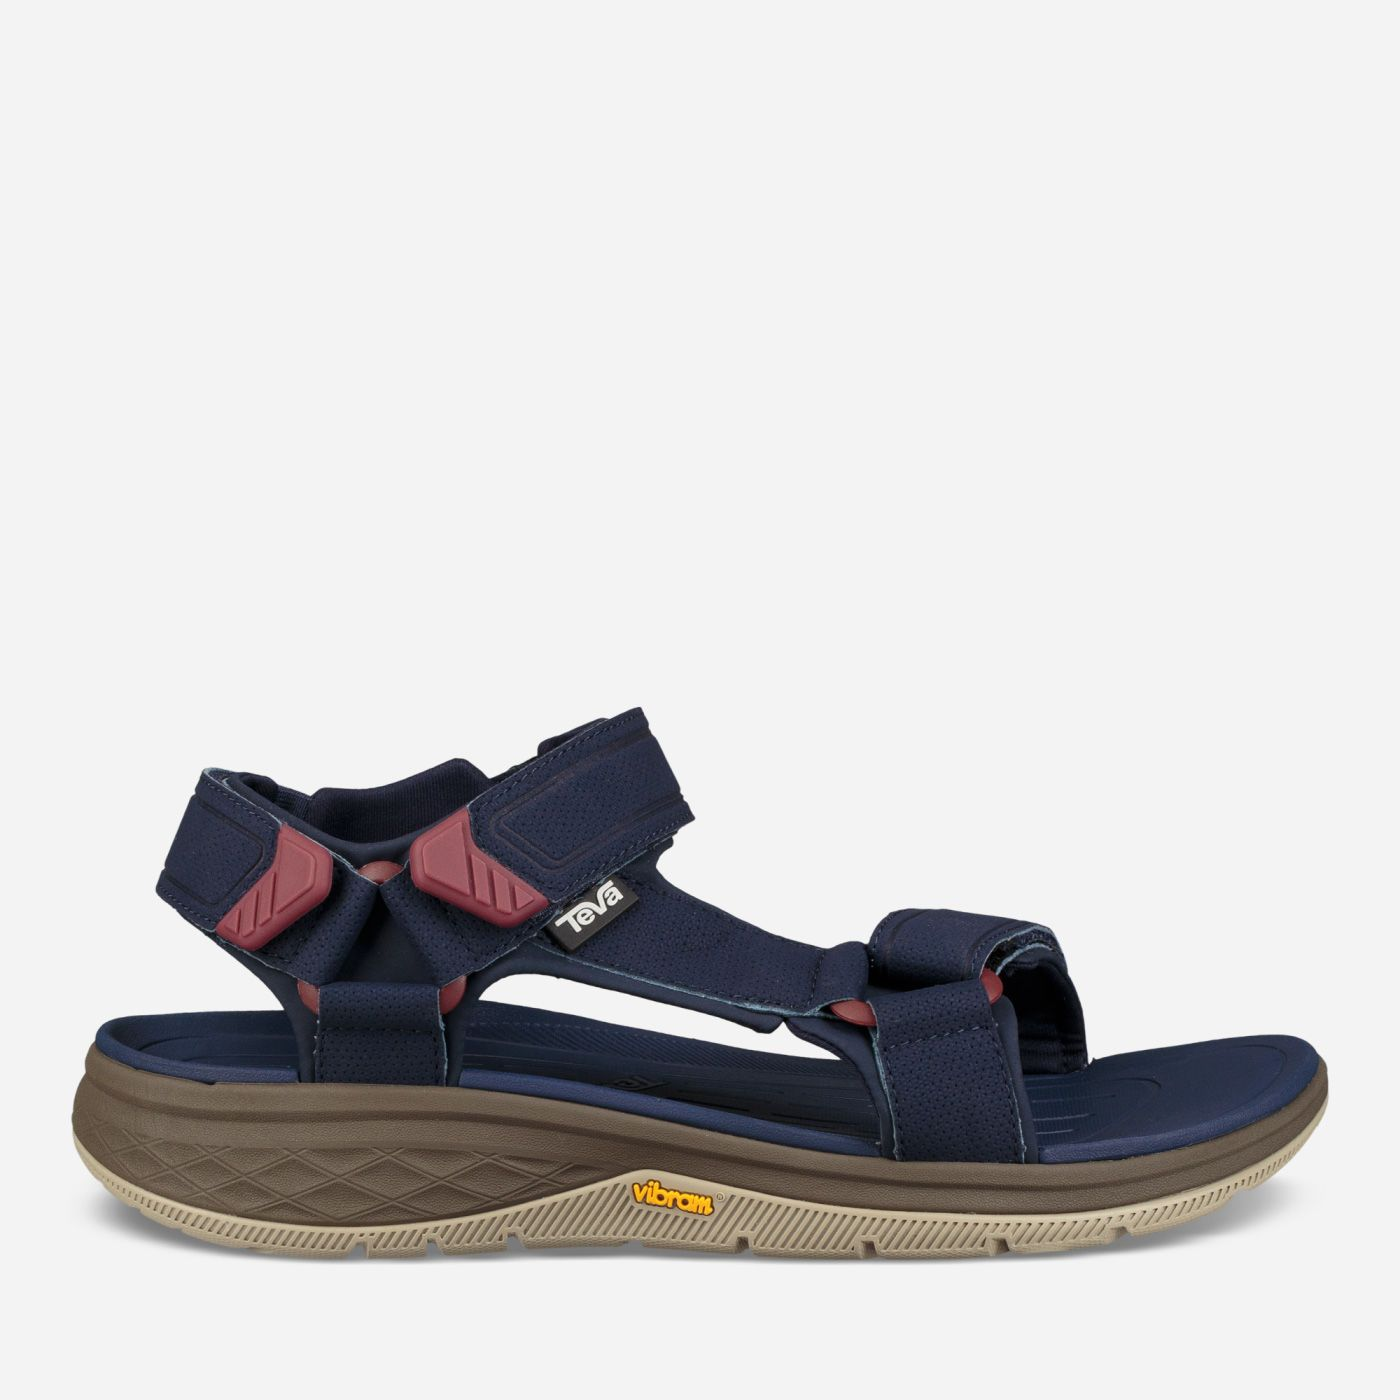 Strata Universal | Hiking sandals, Sandals, New shoes